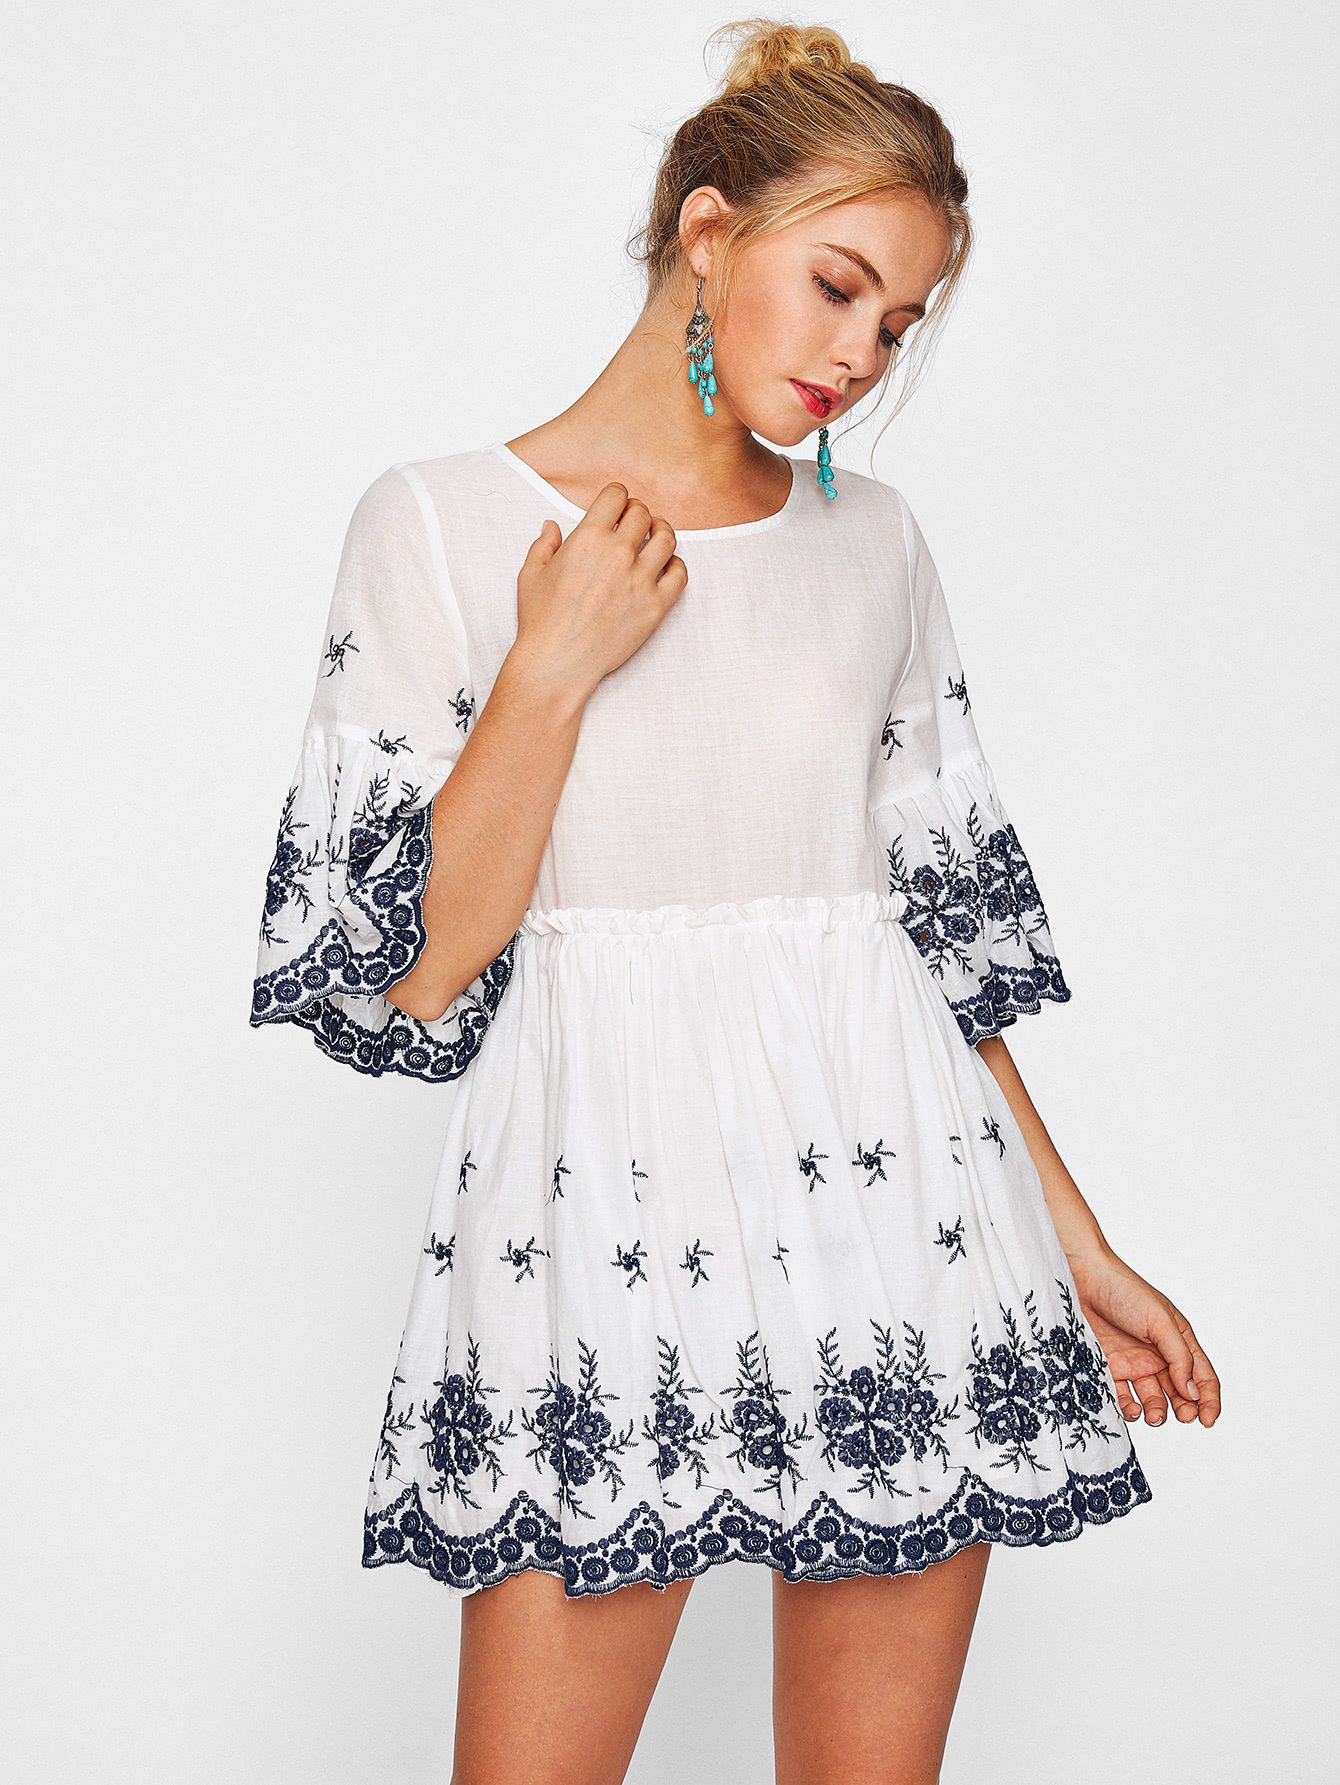 5fd0d9cd948b Shop Scallop Eyelet Embroidered Smock Dress online. SheIn offers Scallop  Eyelet Embroidered Smock Dress & more to fit your fashionable needs.